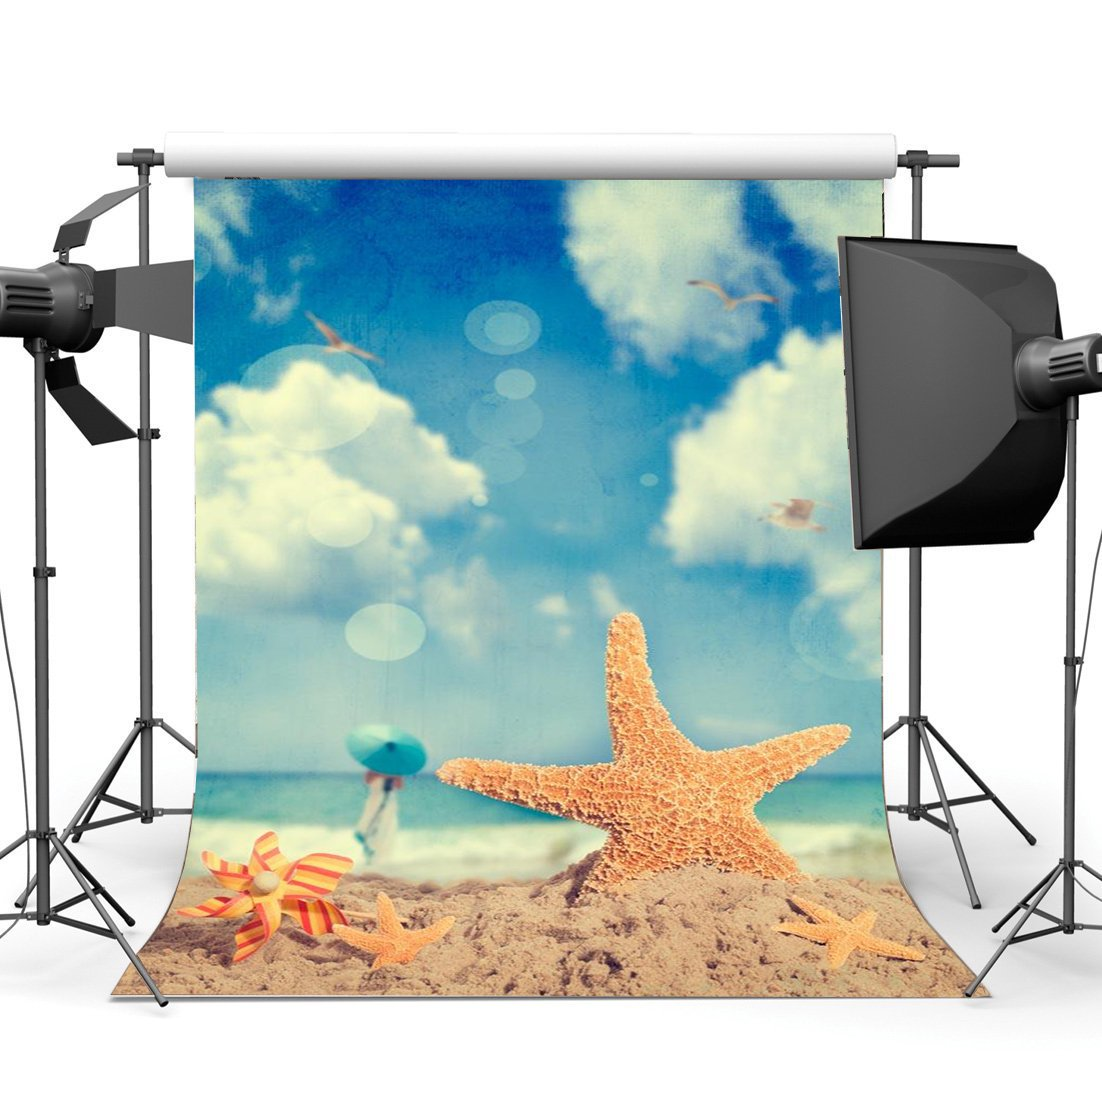 Sand Beach Backdrop Seaside Starfish Pinwheel Birds Blue Sky White Cloud Bokeh Glitter Girls Lover Wedding-in Photo Studio Accessories from Consumer Electronics